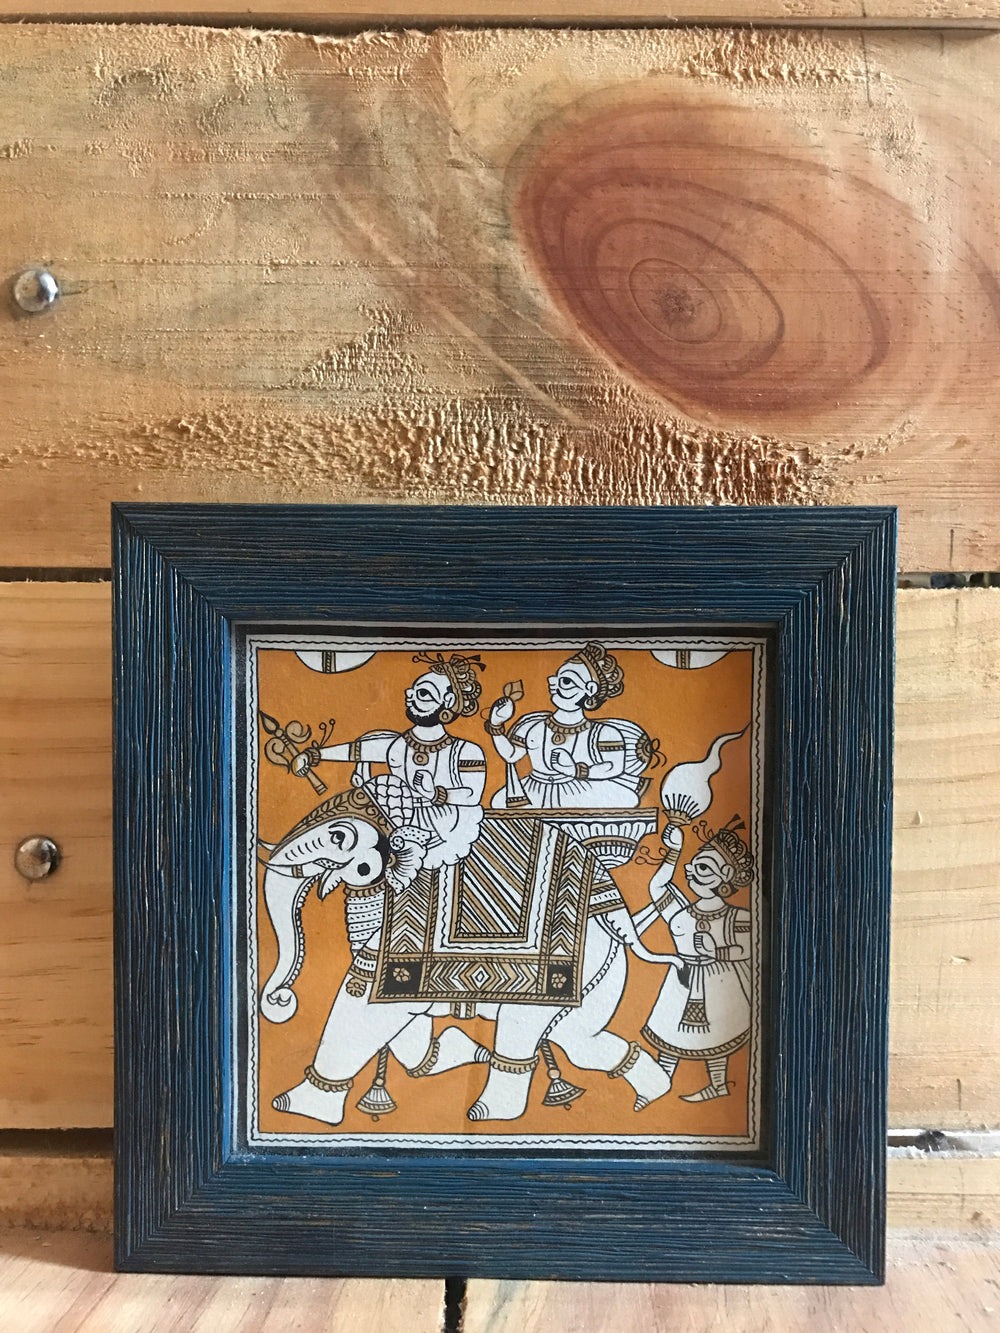 Original Phad painting desktop frame